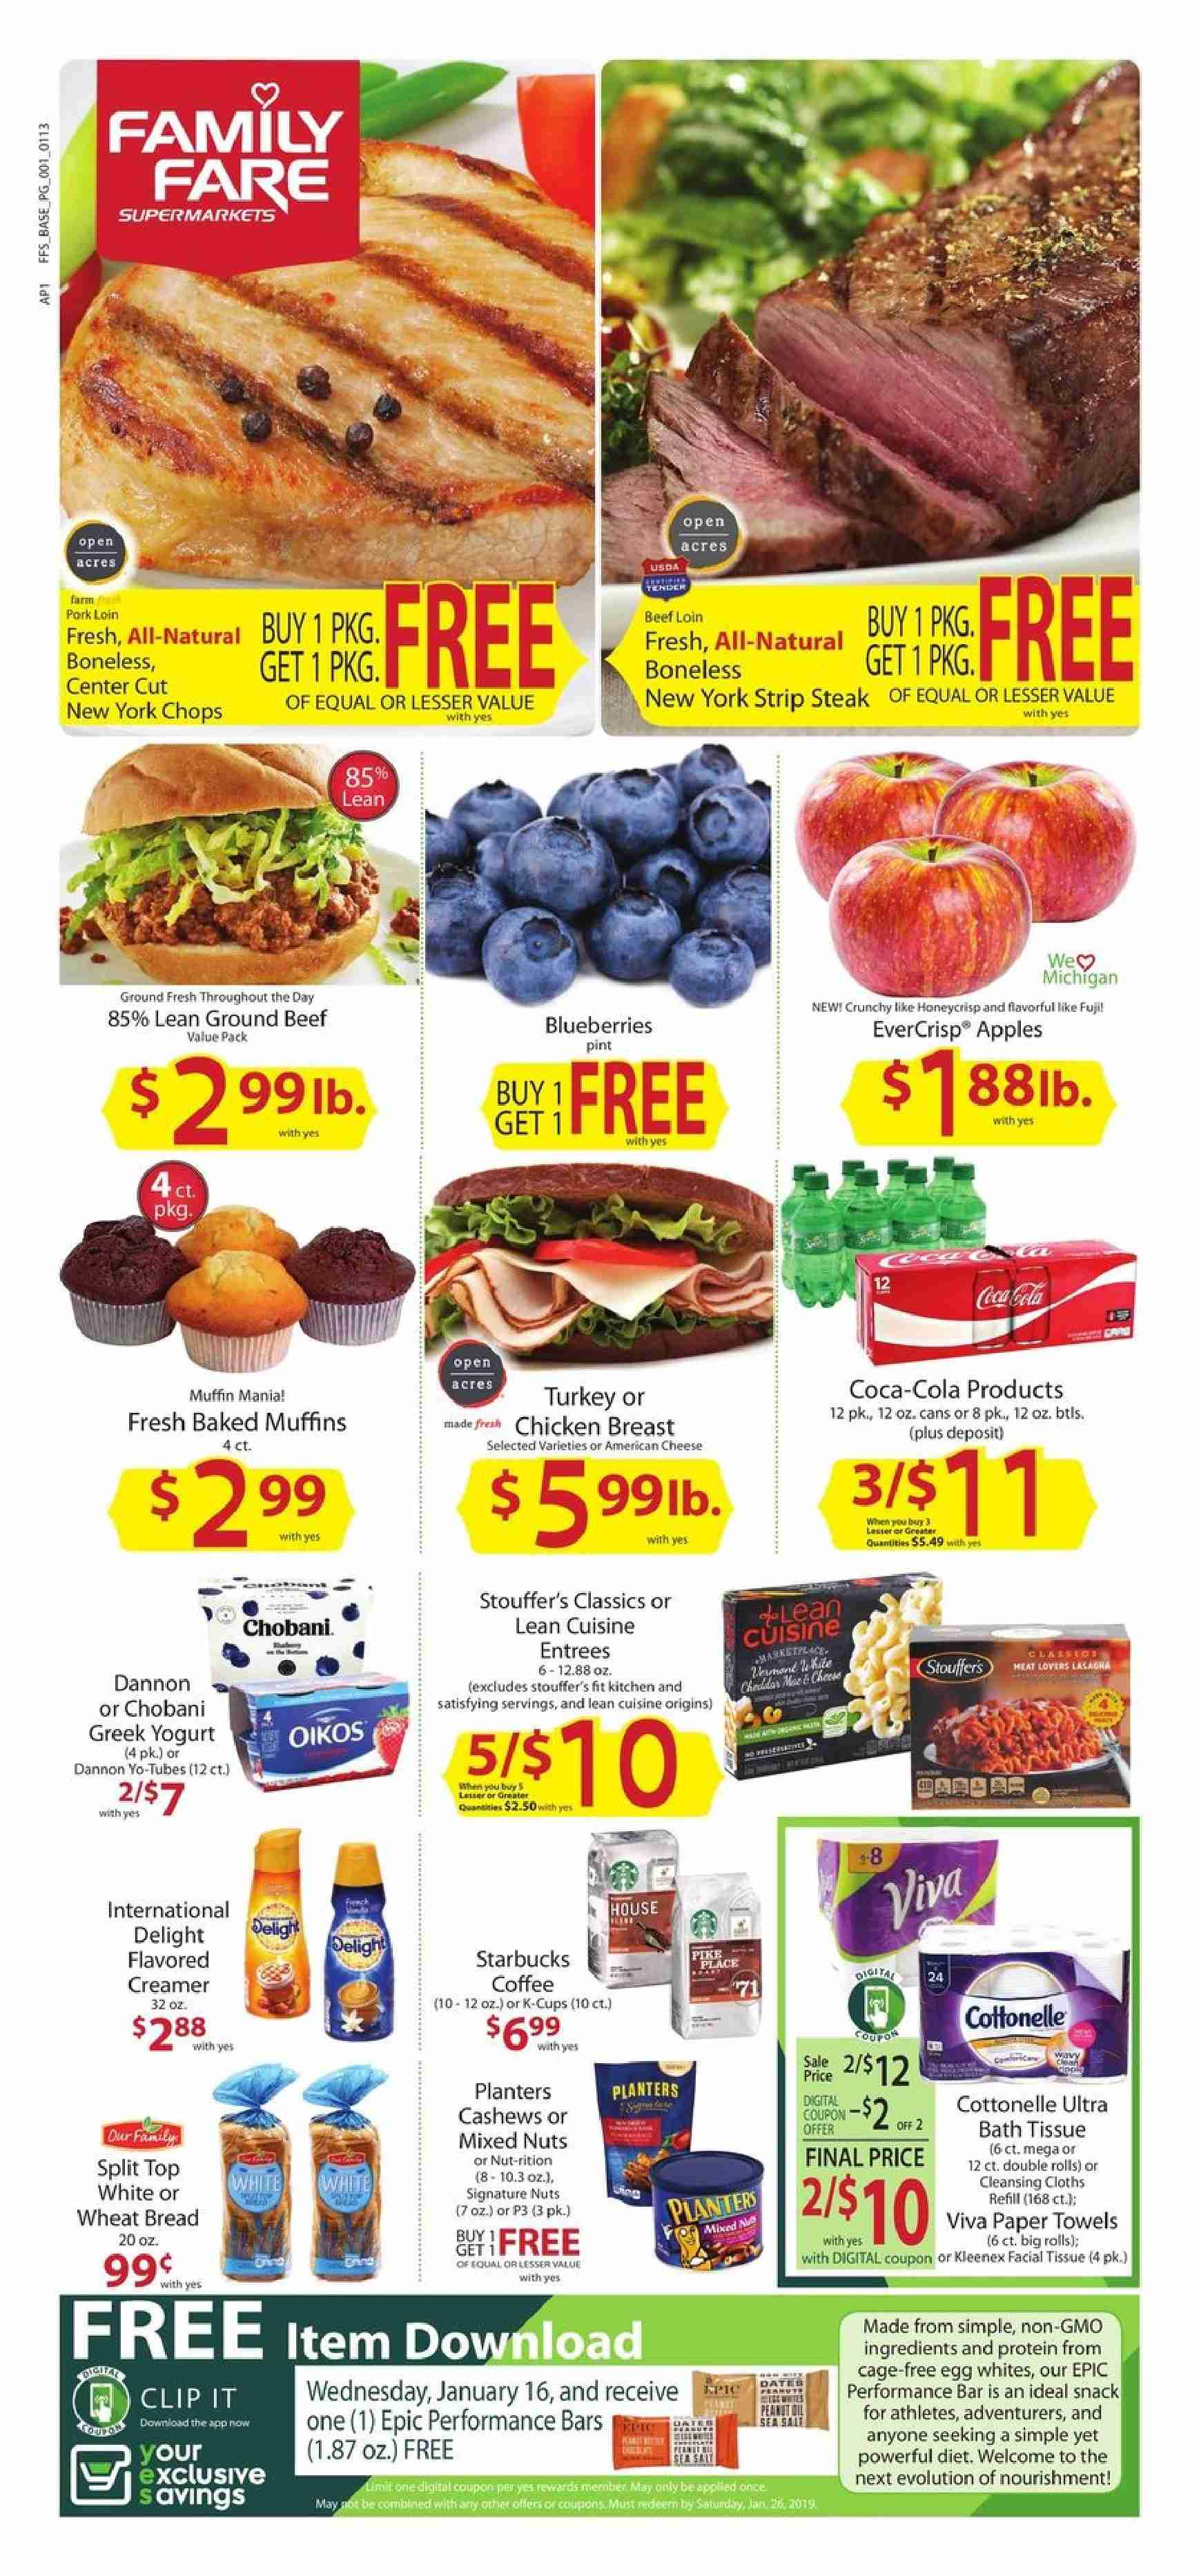 Family Fare Flyer - 01.13.2019 - 01.19.2019 - Sales products - american cheese, apple, bath, bath tissue, beef meat, blueberries, bread, cashews, coca-cola, cottonelle, greek yogurt, ground beef, muffins, starbucks, top, towel, turkey, wheat bread, yogurt, kitchen, pike, pork loin, pork meat, protein, paper towel, steak, cheese, paper, creamer, snack, bar, nuts. Page 1.